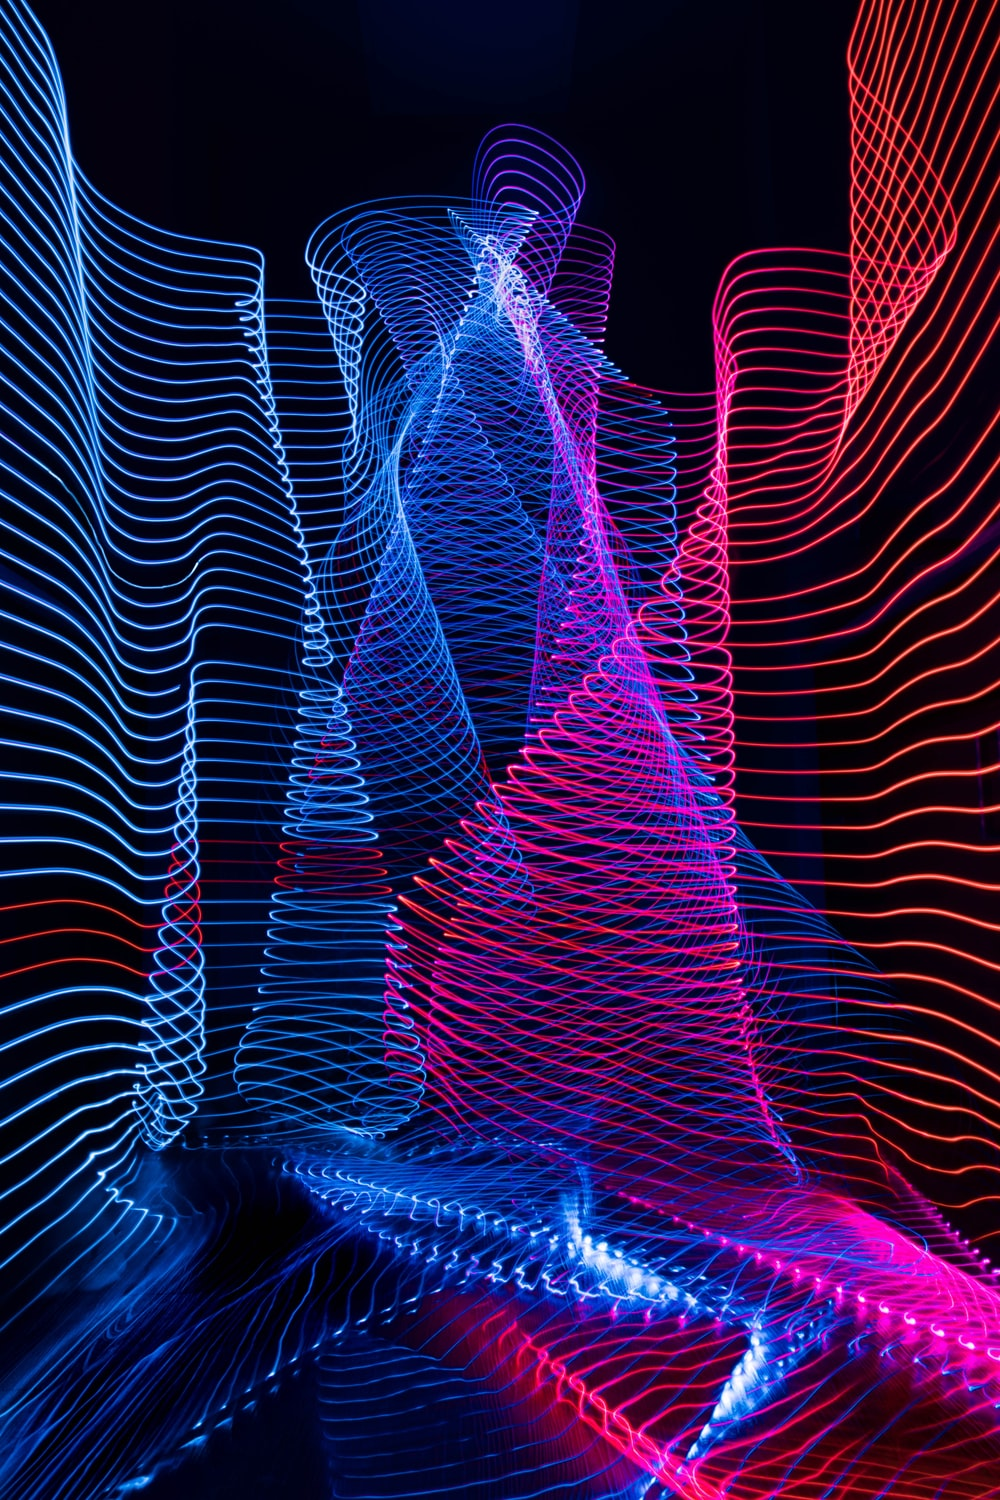 blue, red and pink abstract artwork